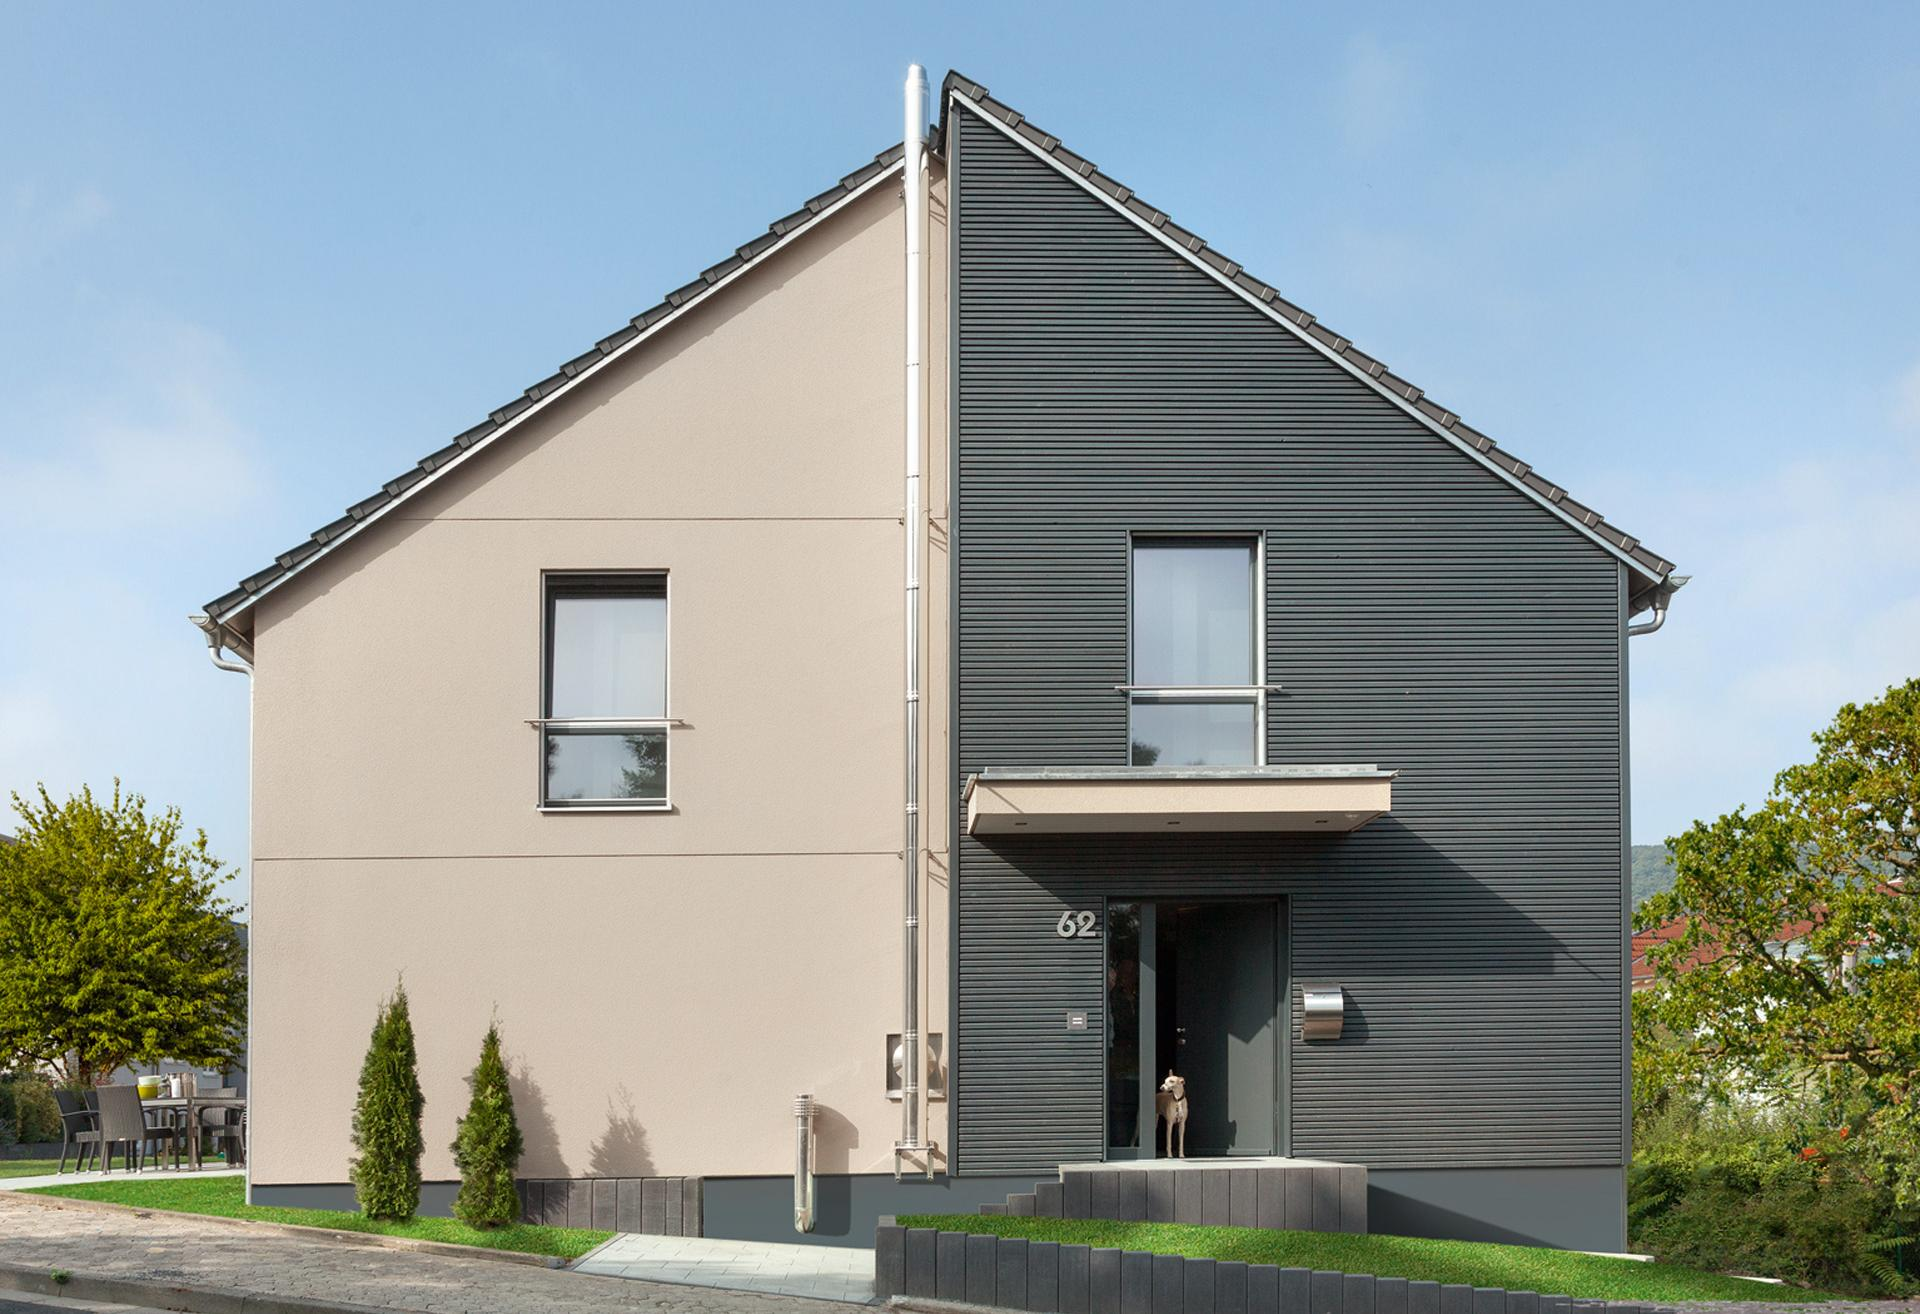 Modern detached house in Bauhaus style and pitched roof